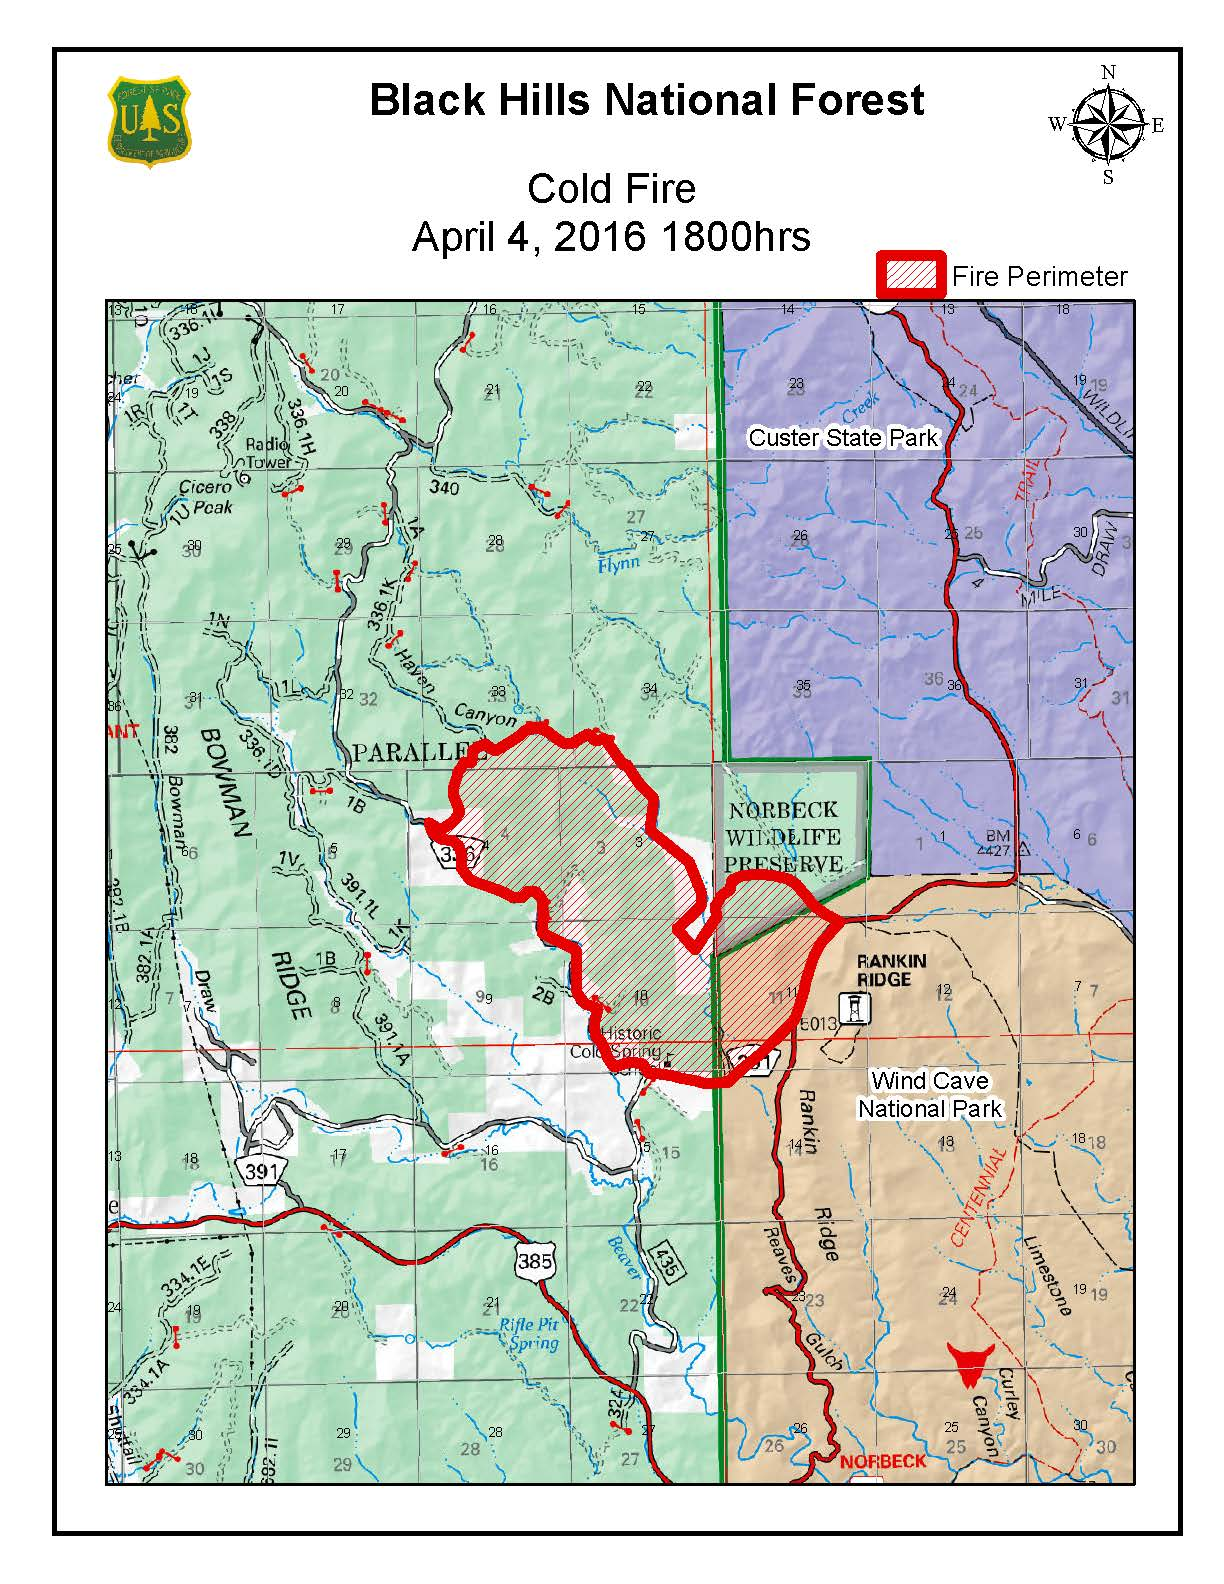 the cold fire started on april 2 2016 4 miles east of pringle sd near highway 87